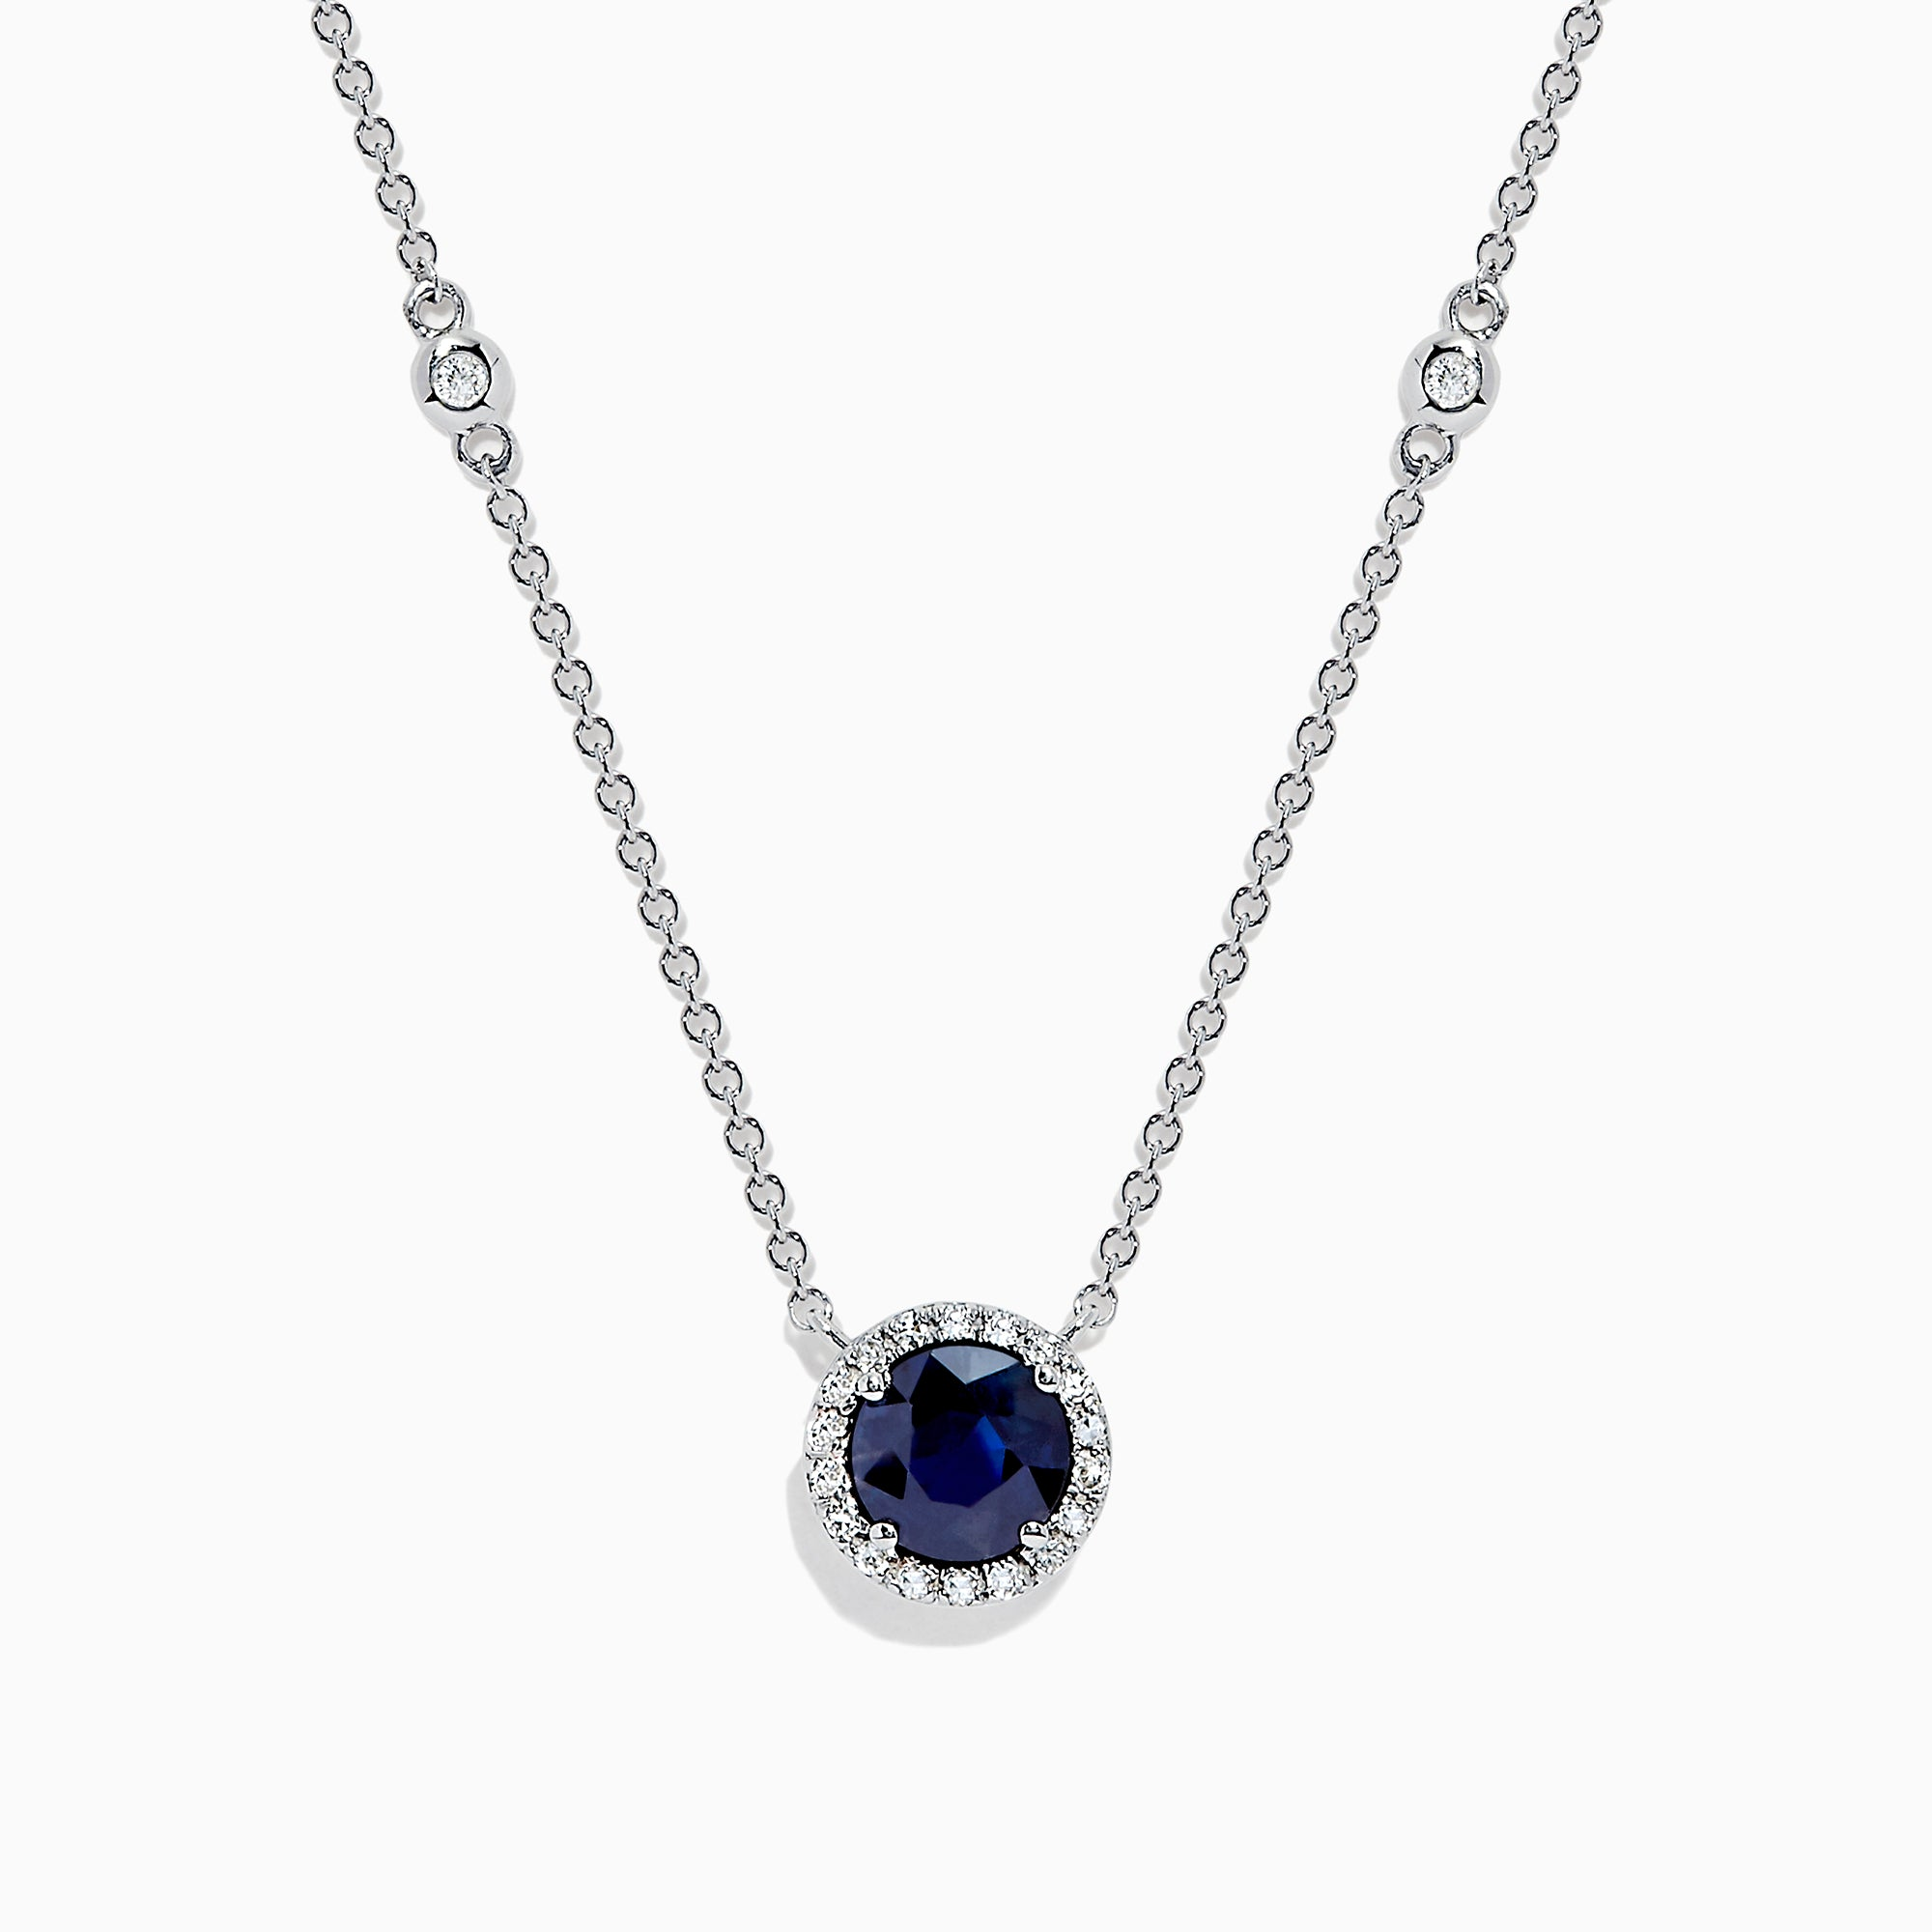 Effy Royale Bleu 14K White Gold Sapphire and Diamond Necklace, 1.11 TCW